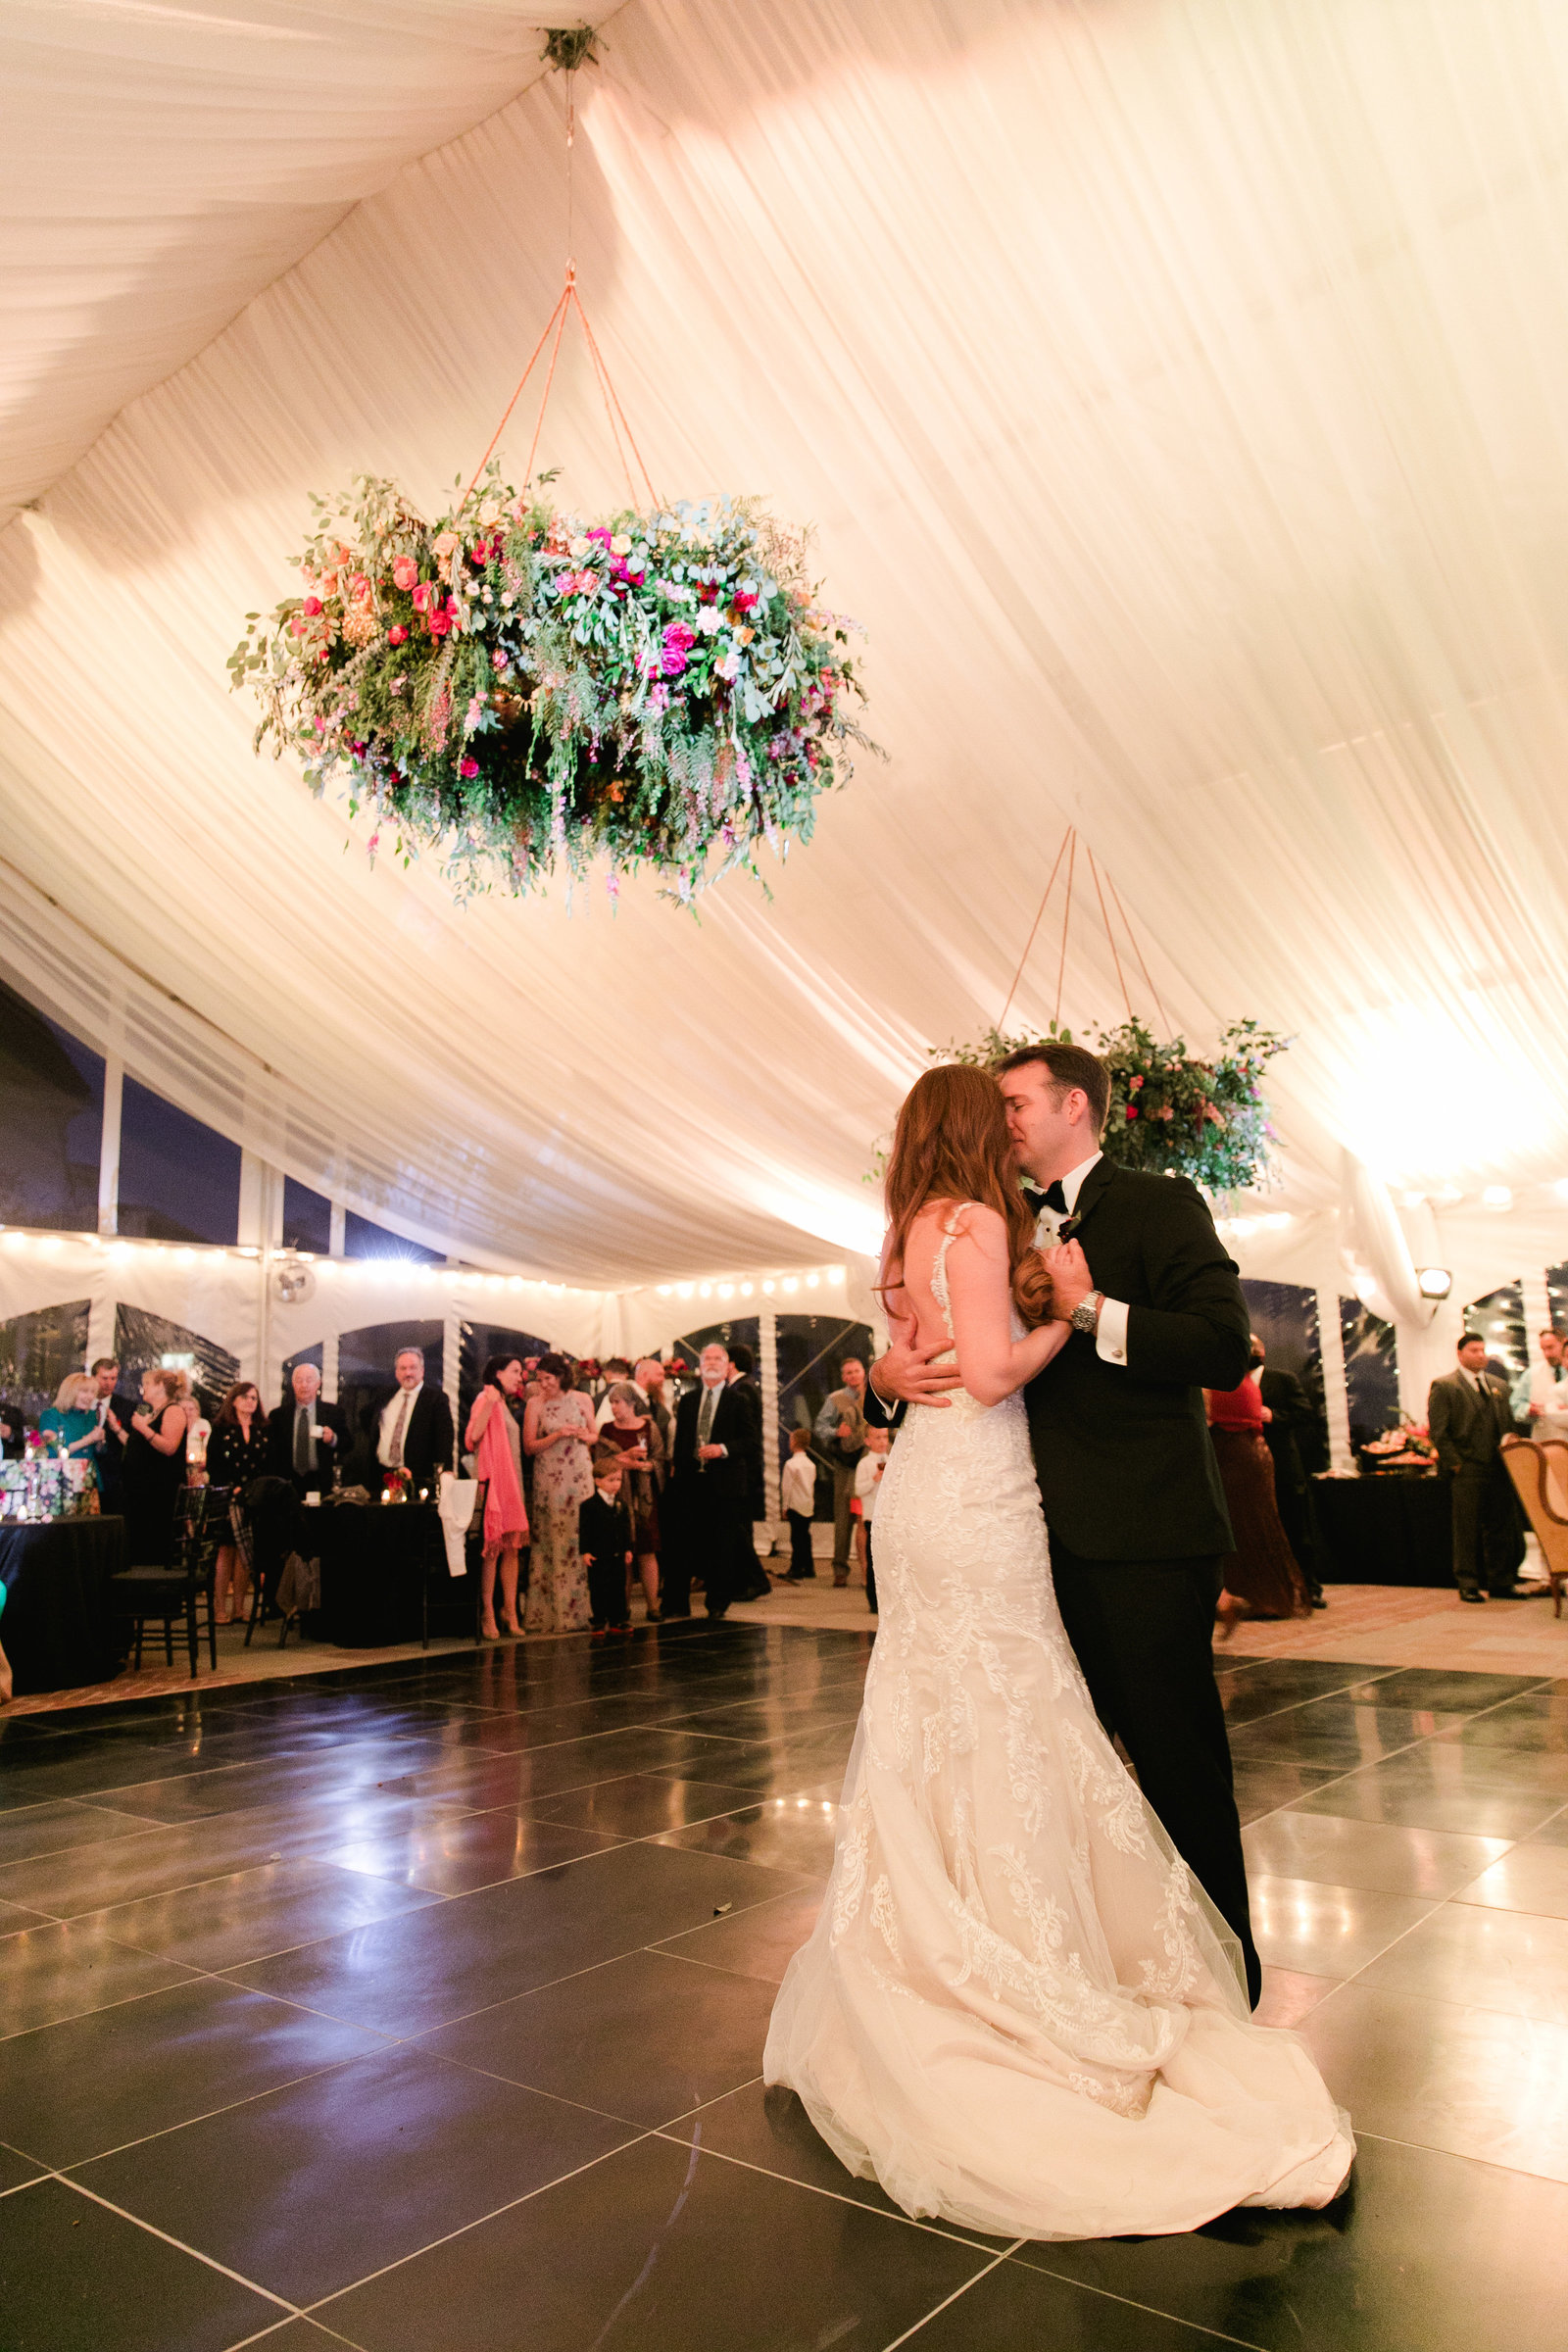 Pamela Barefoot, Atrendy, Warner Hall wedding, Virginia wedding, tent wedding, holly chapple